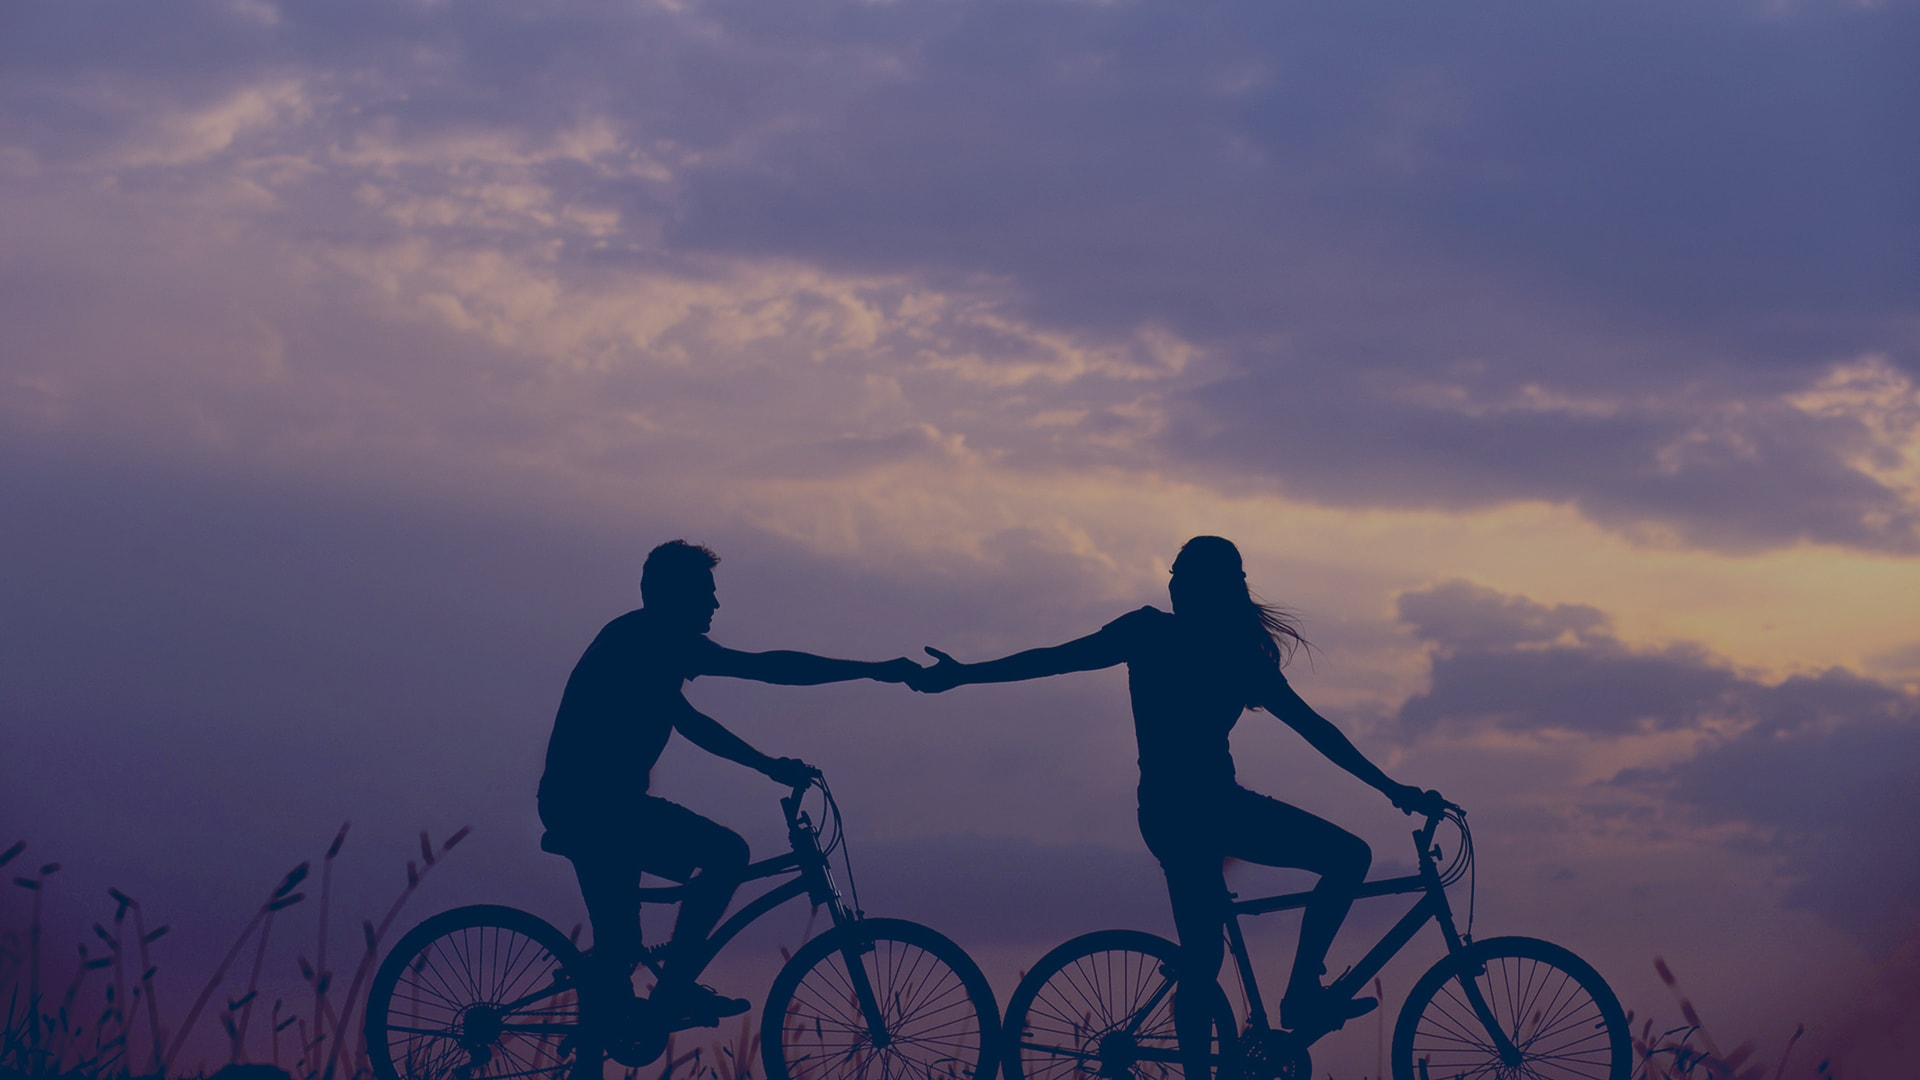 two people holding hands while riding bikes during purple dusk